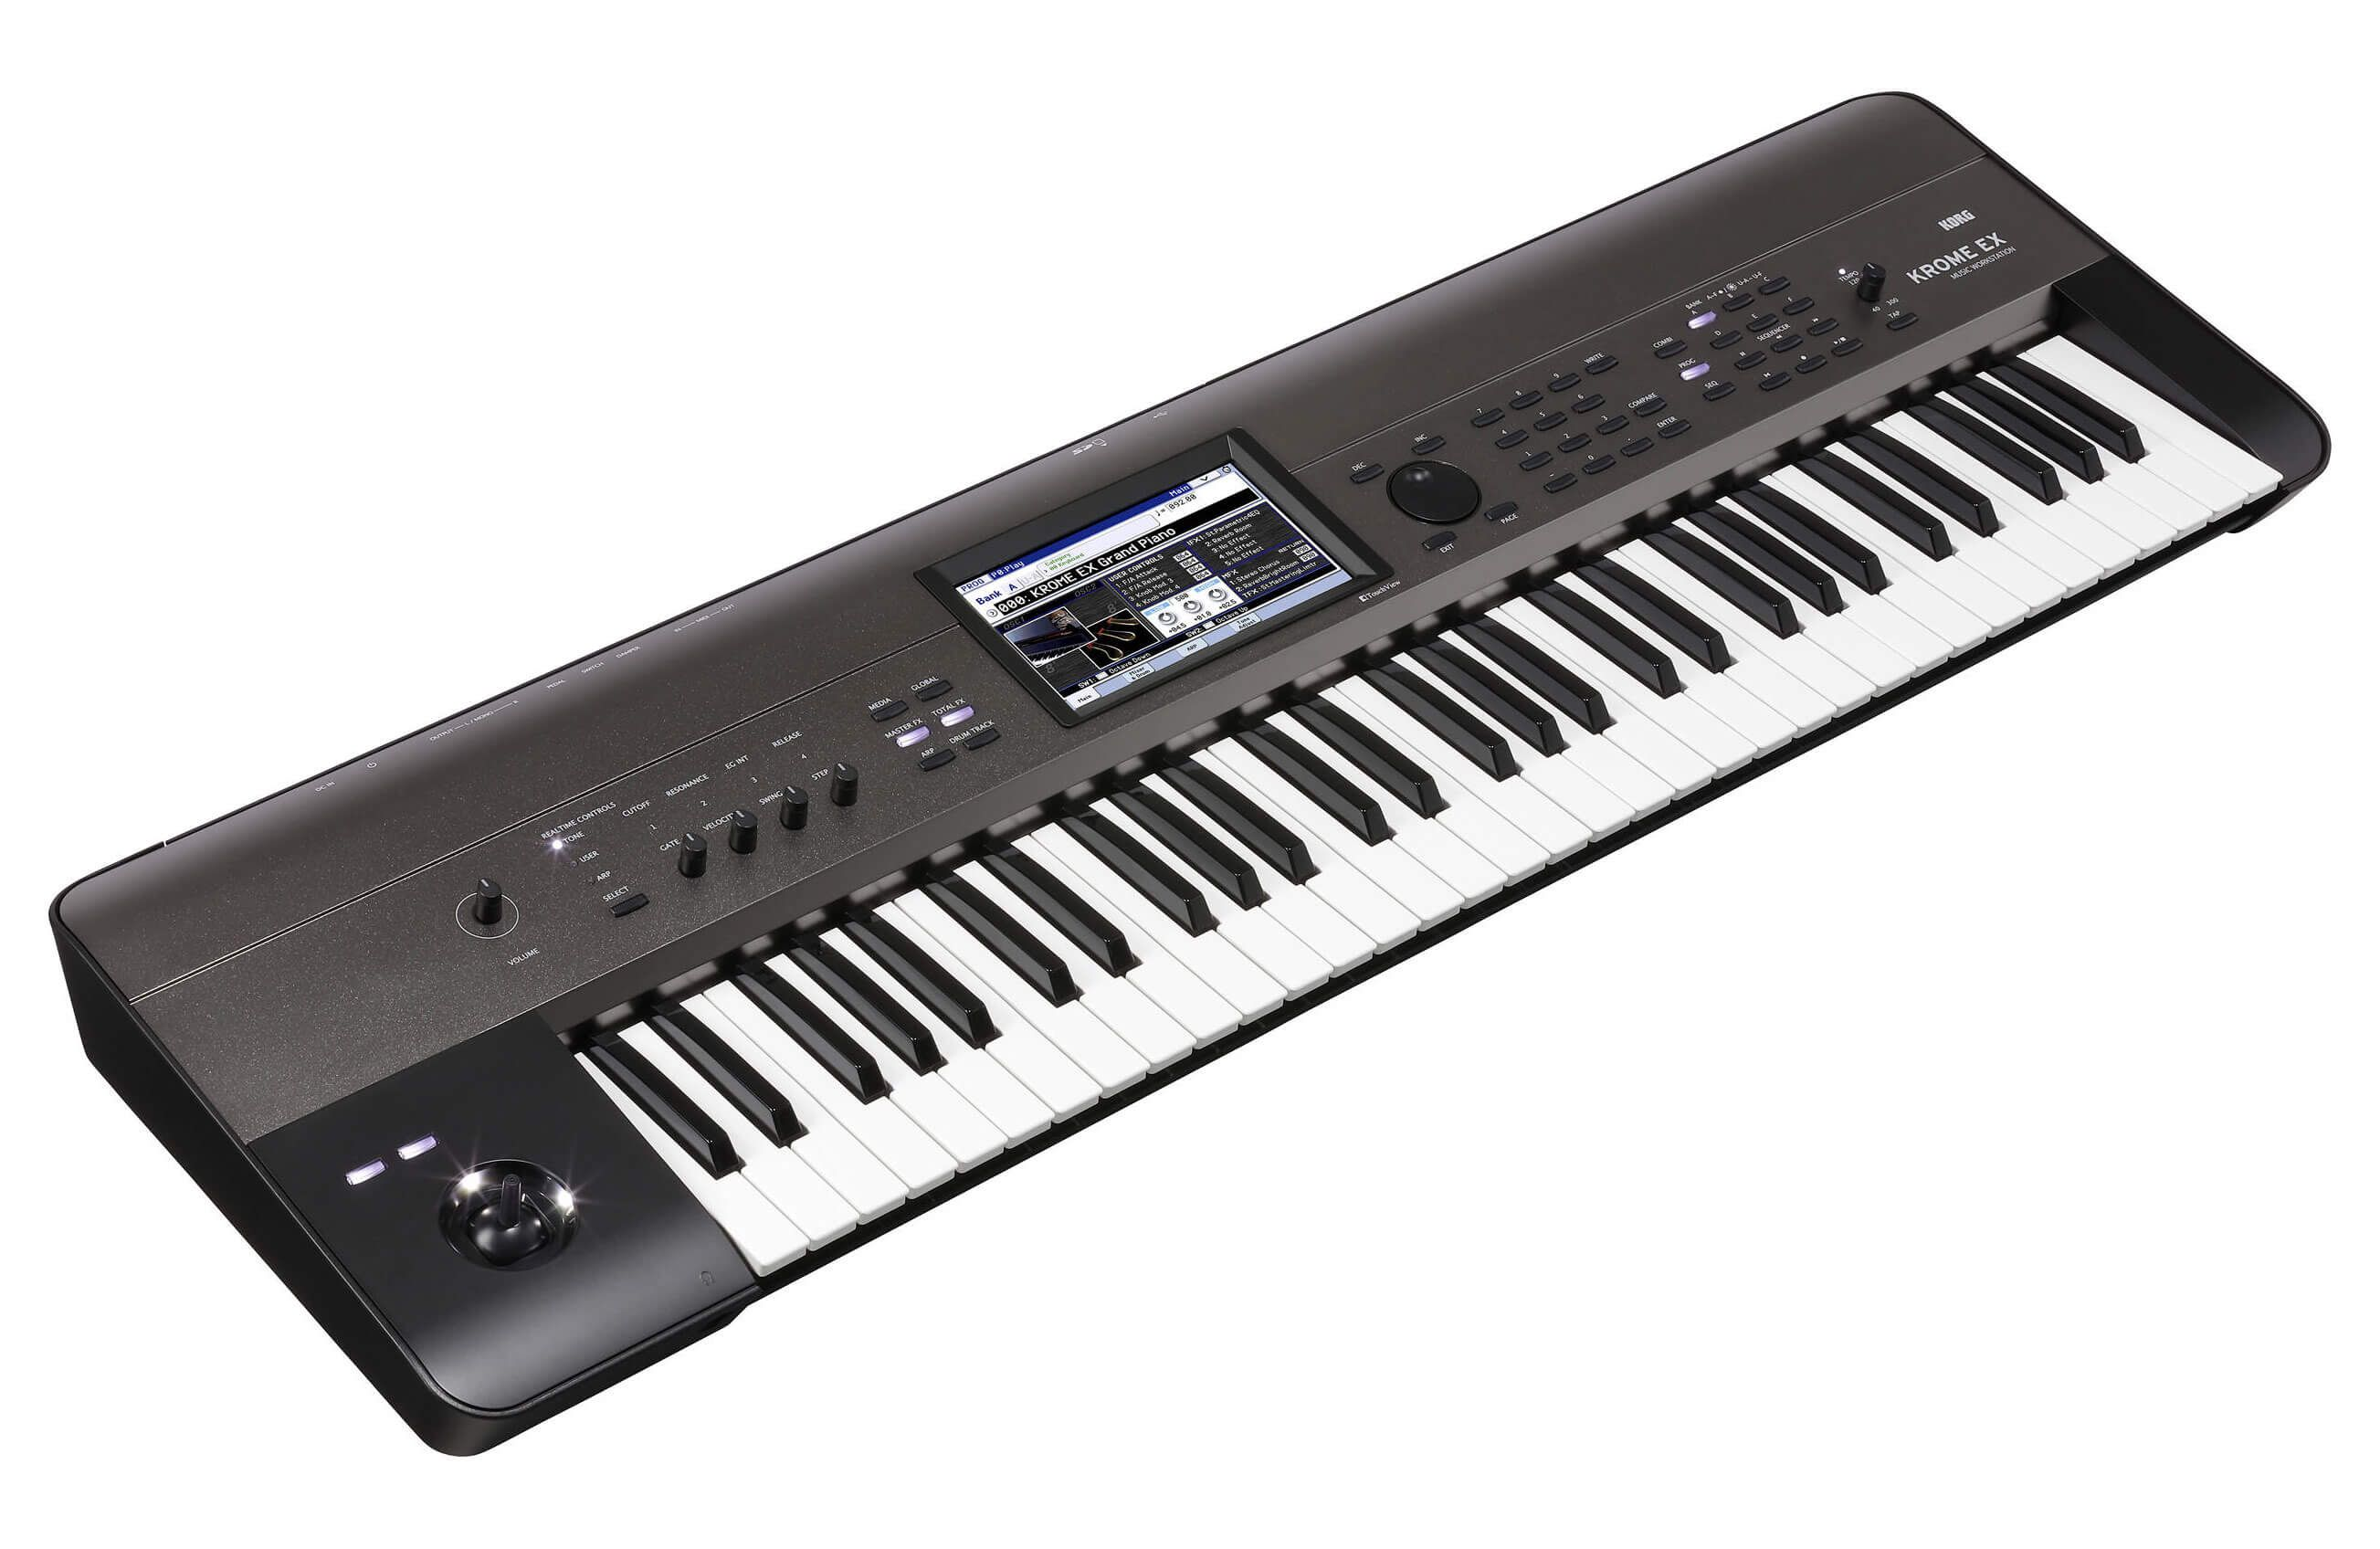 82e37d87311 Buy Korg Krome EX-61 Music Workstation Keyboard Synthesizer online at an  Affordable price in